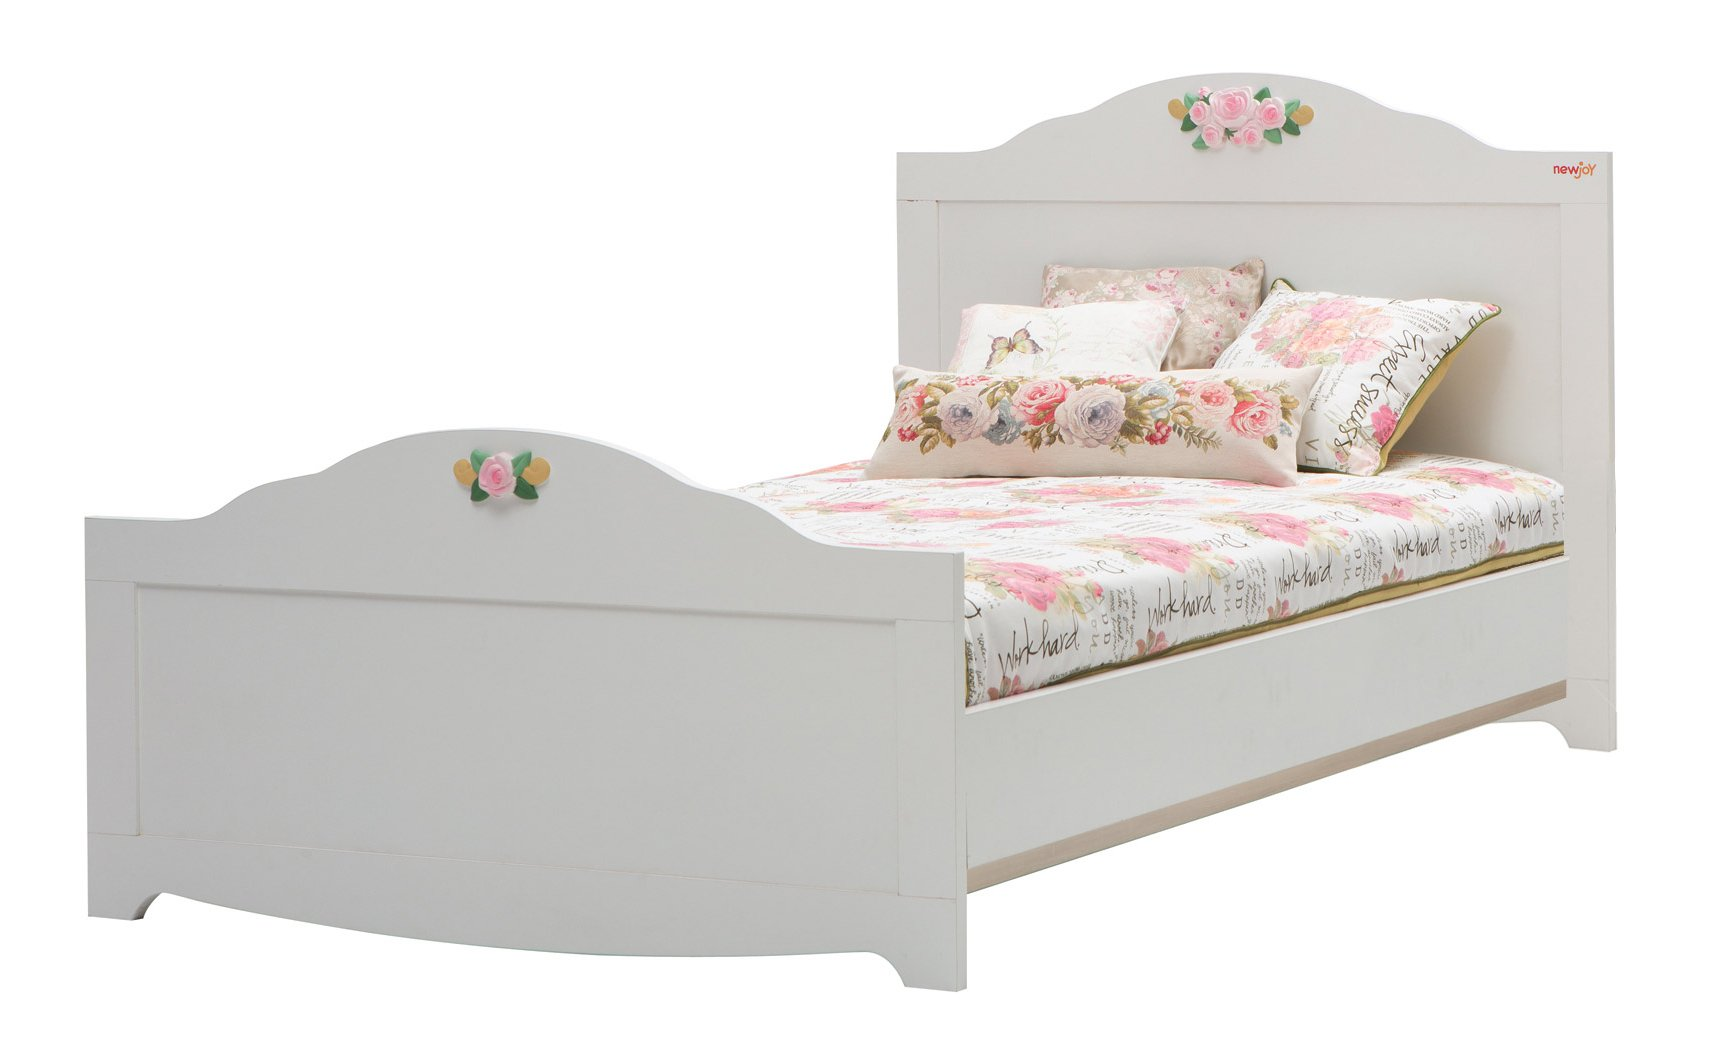 newjoy laura children 39 s night small double bed